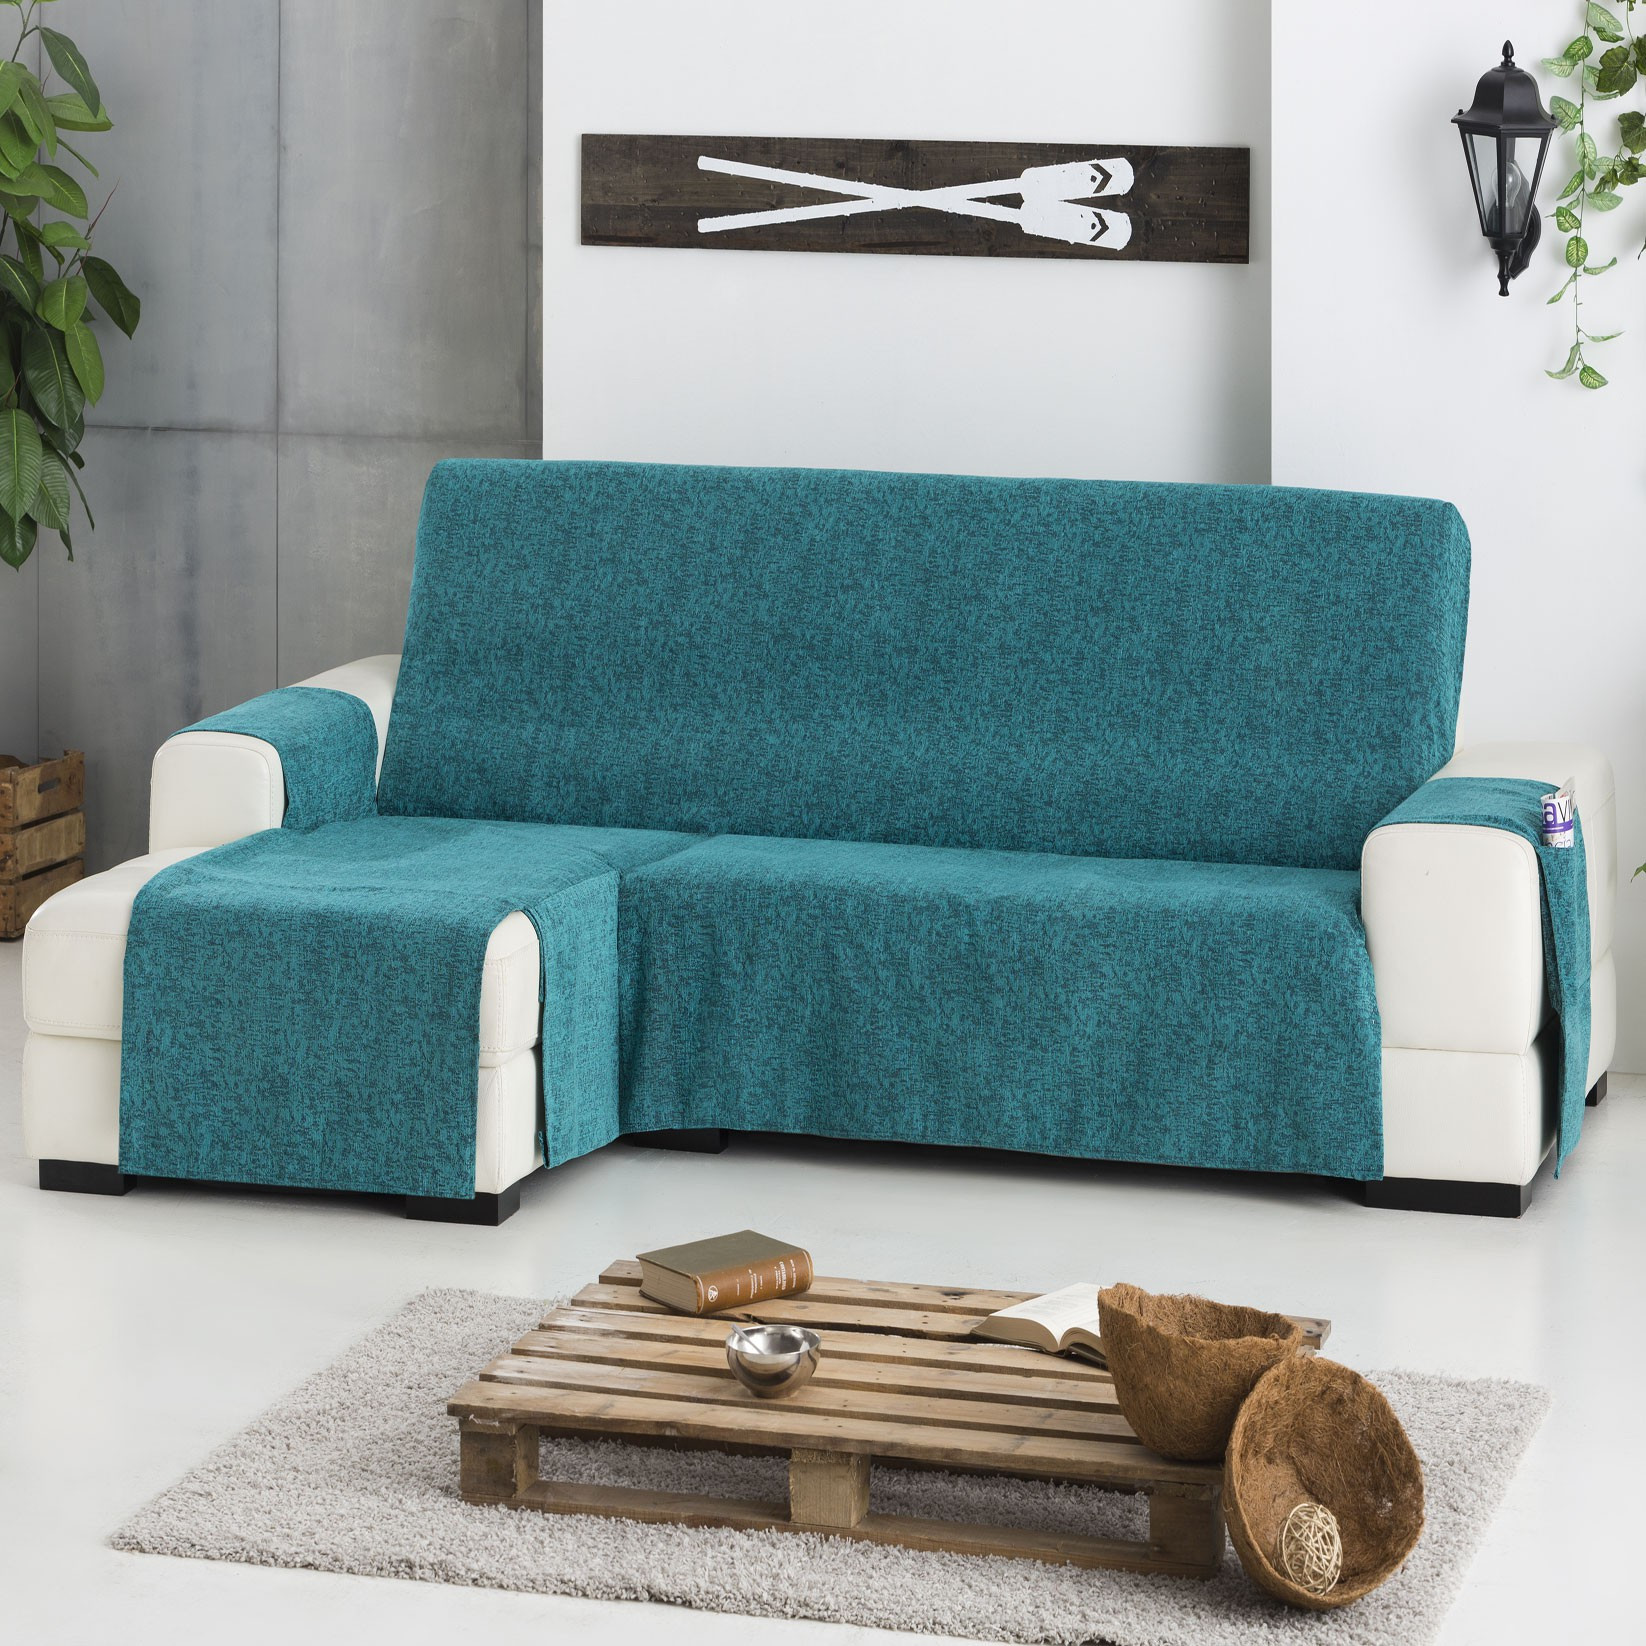 Fundas De sofa Chaise Longue Encantador Funda sofá Chaise Longue Práctica Dream Of 42  Brillante Fundas De sofa Chaise Longue